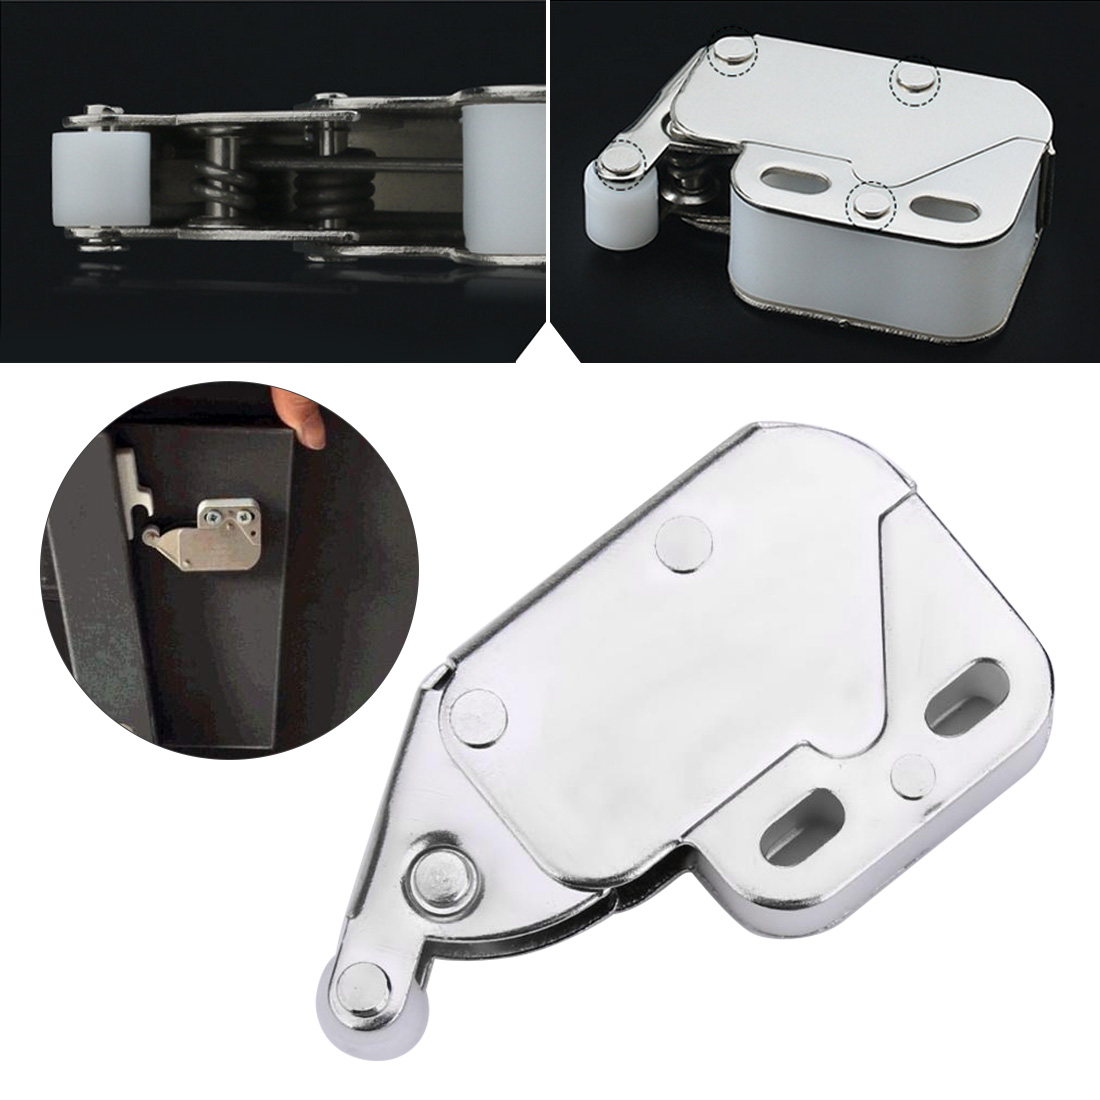 Mini Push Spring Clip Lock Catch Latch Cabinets Anti-Theft Cupboard Doors Lock With Cross Keys For Furniture Hardware  34 X 27mm